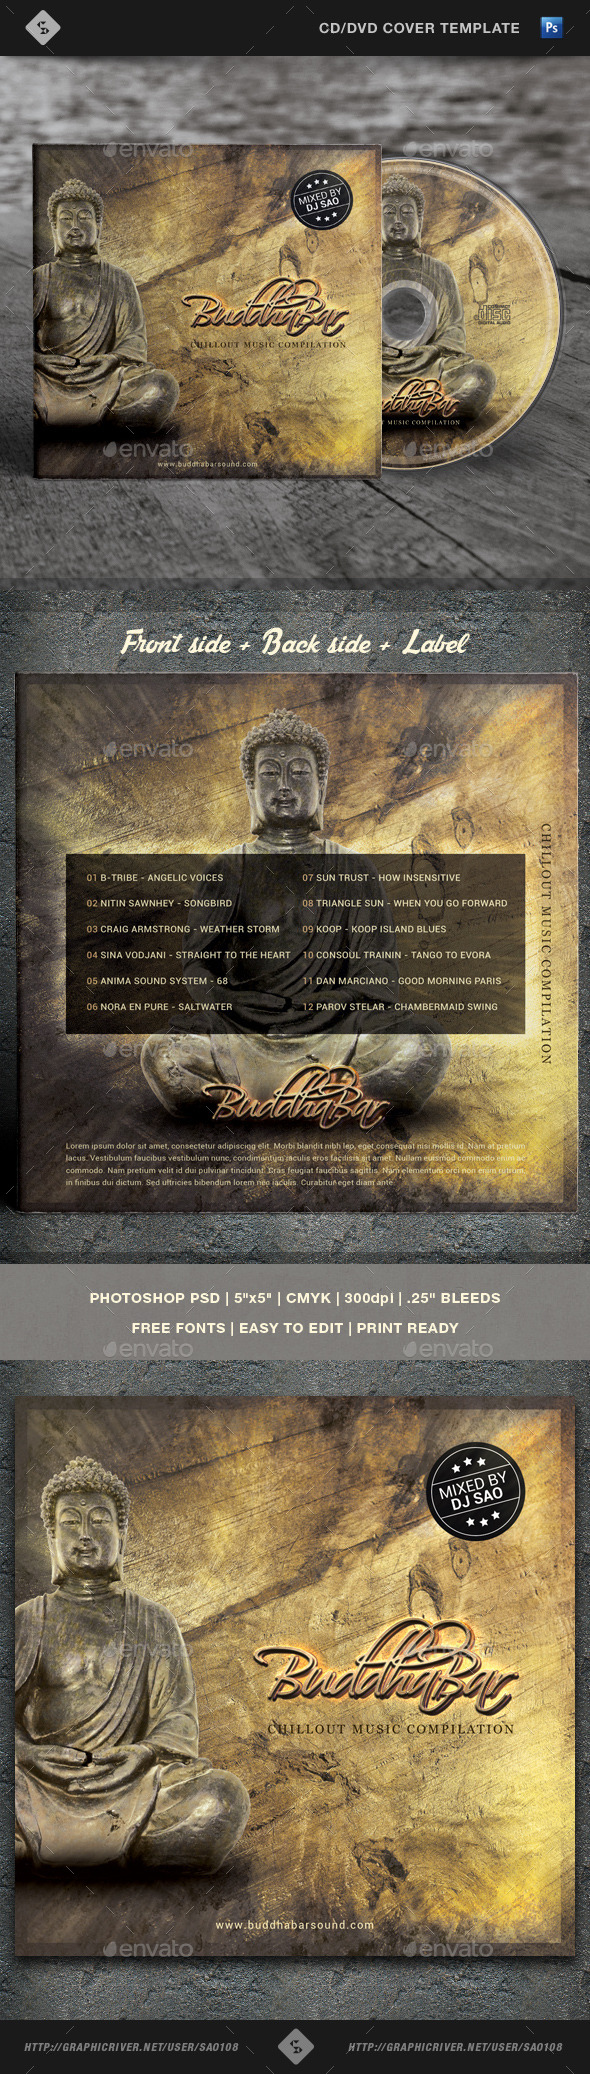 GraphicRiver Buddha Bar Chill Out CD Cover Artwork Template 10822527